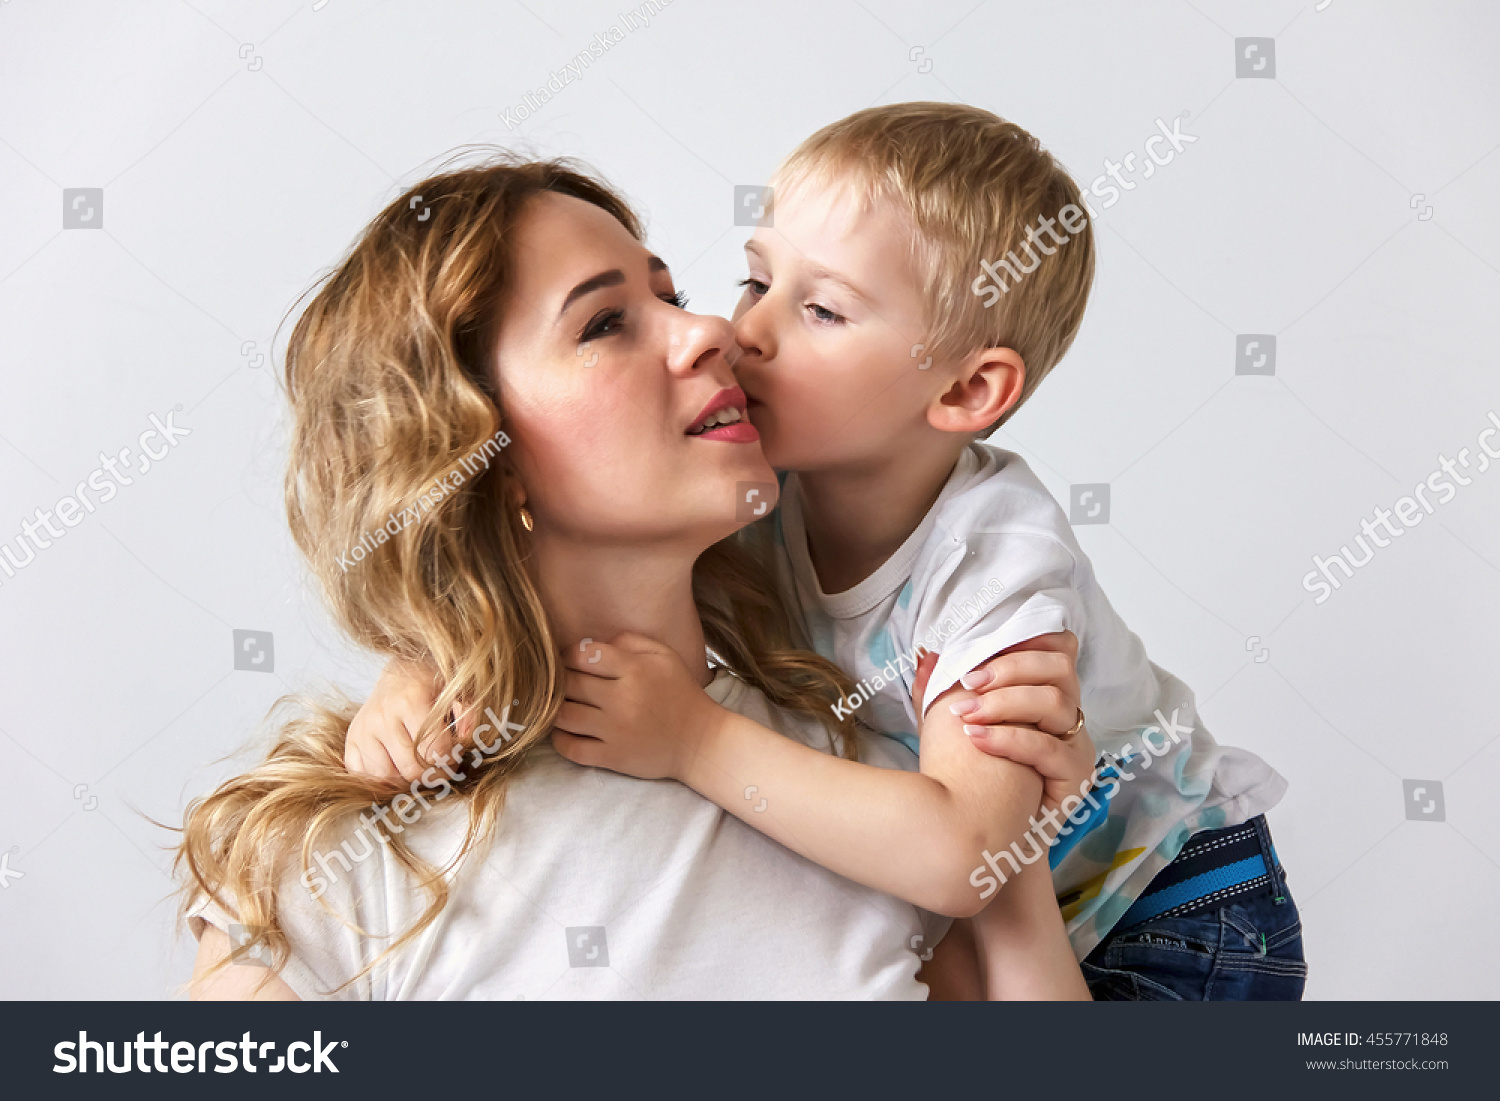 For Son kisses his mom very hard apologise, there